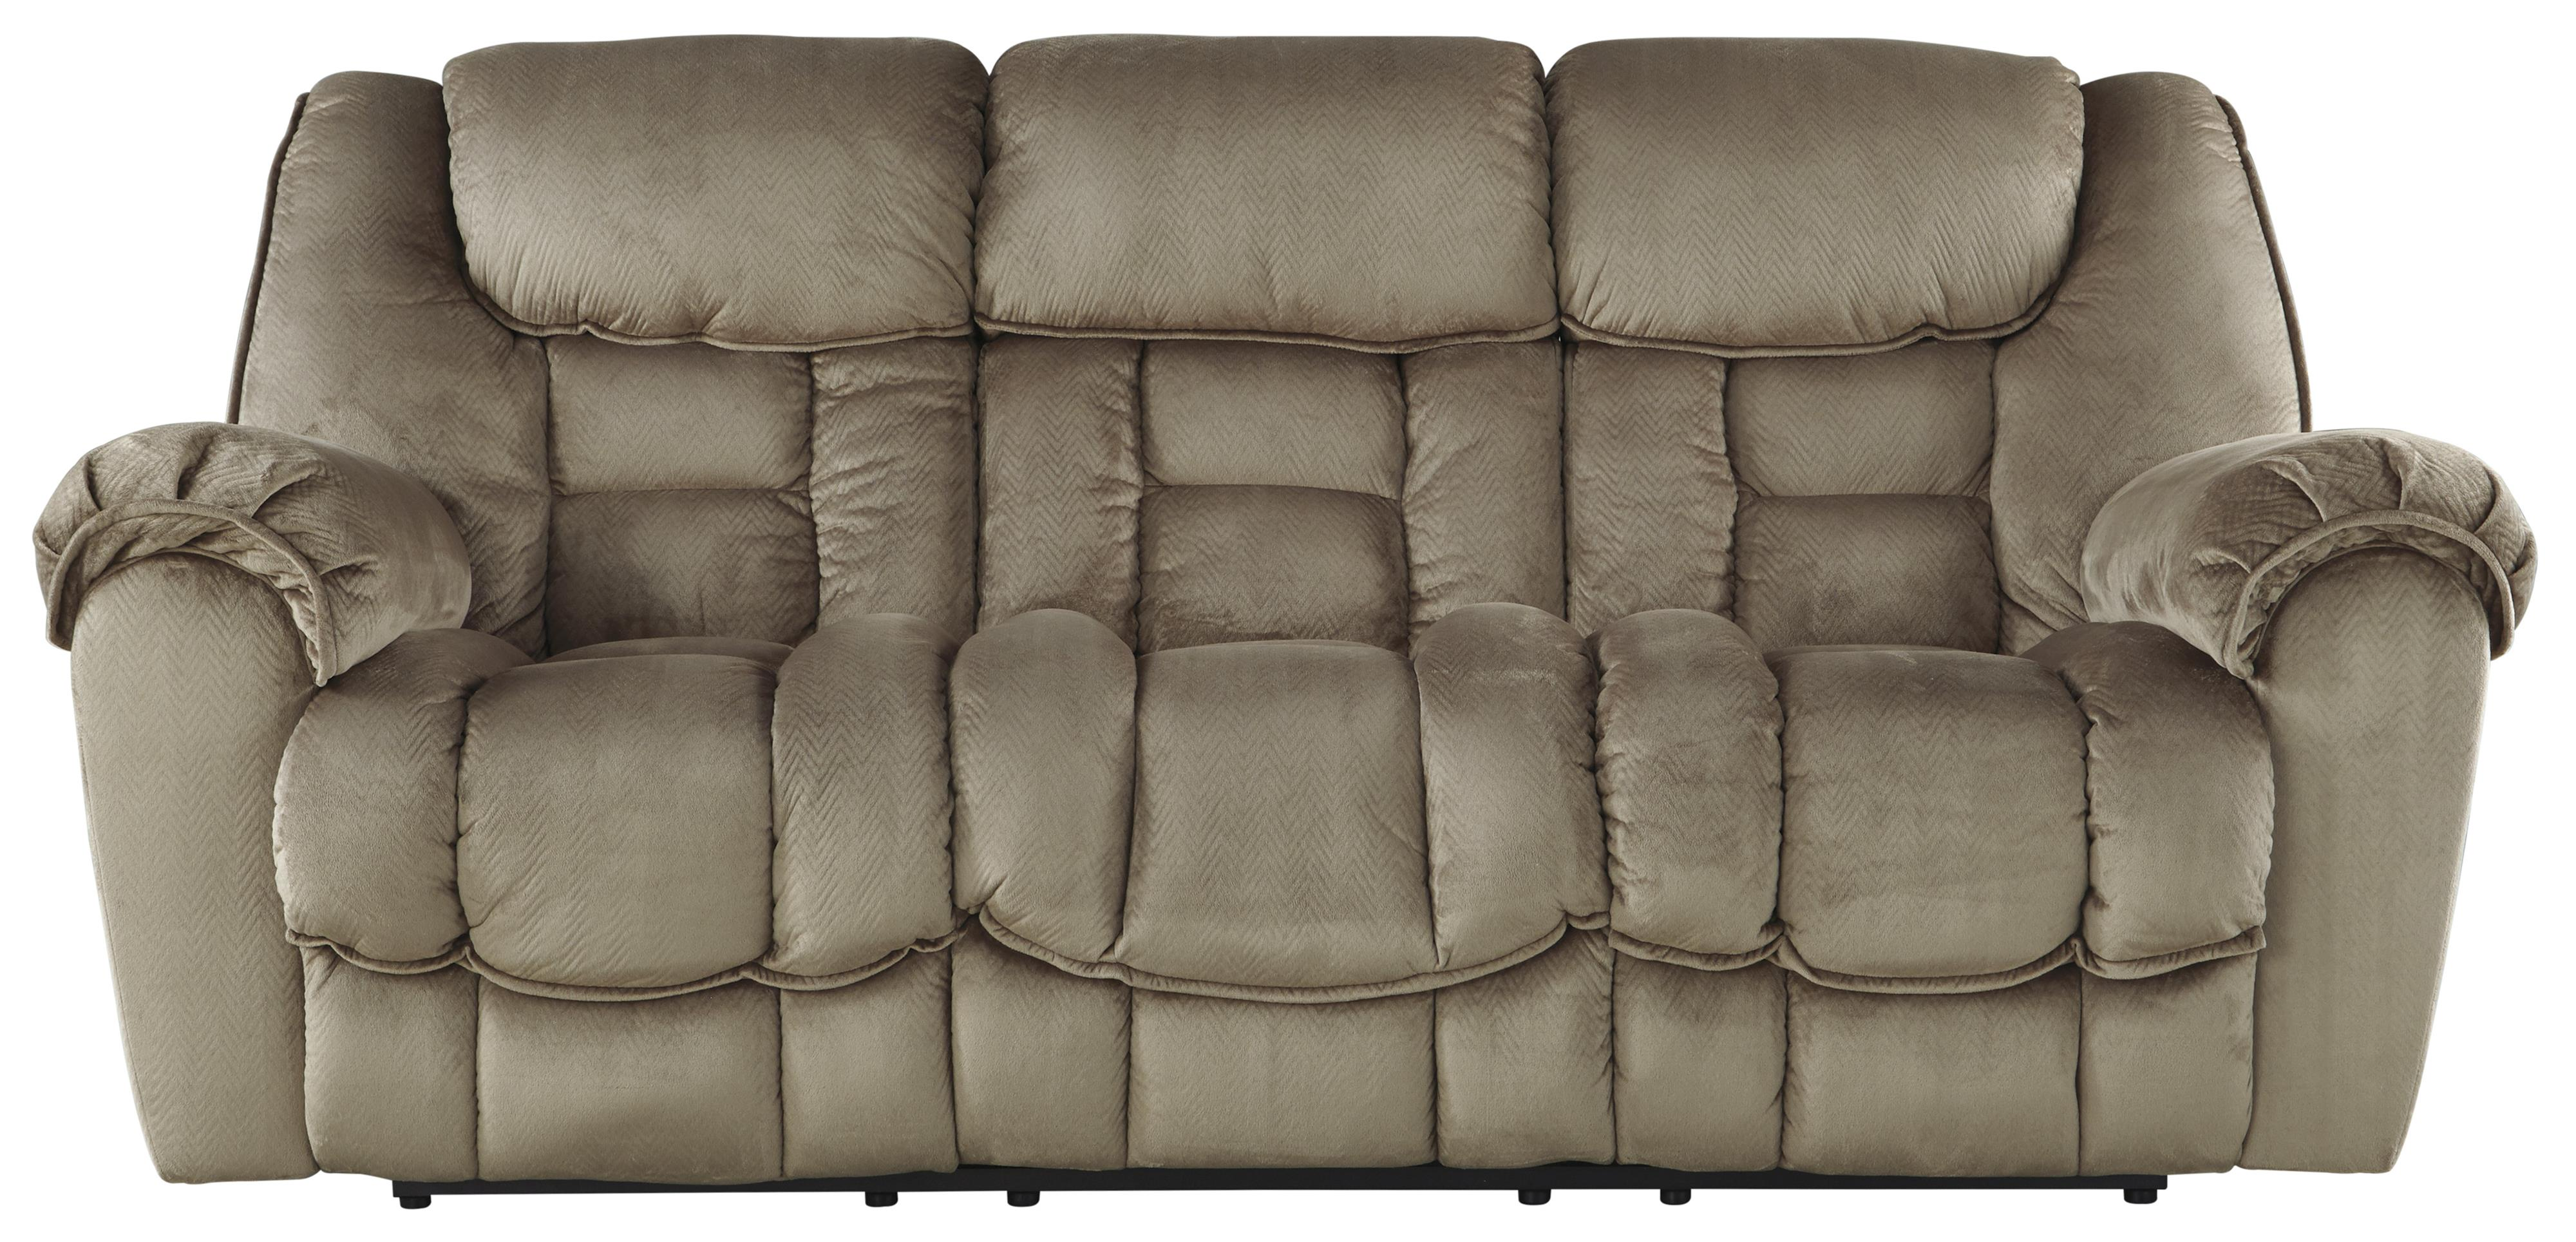 Benchcraft Jodoca Reclining Sofa - Item Number: 3660188